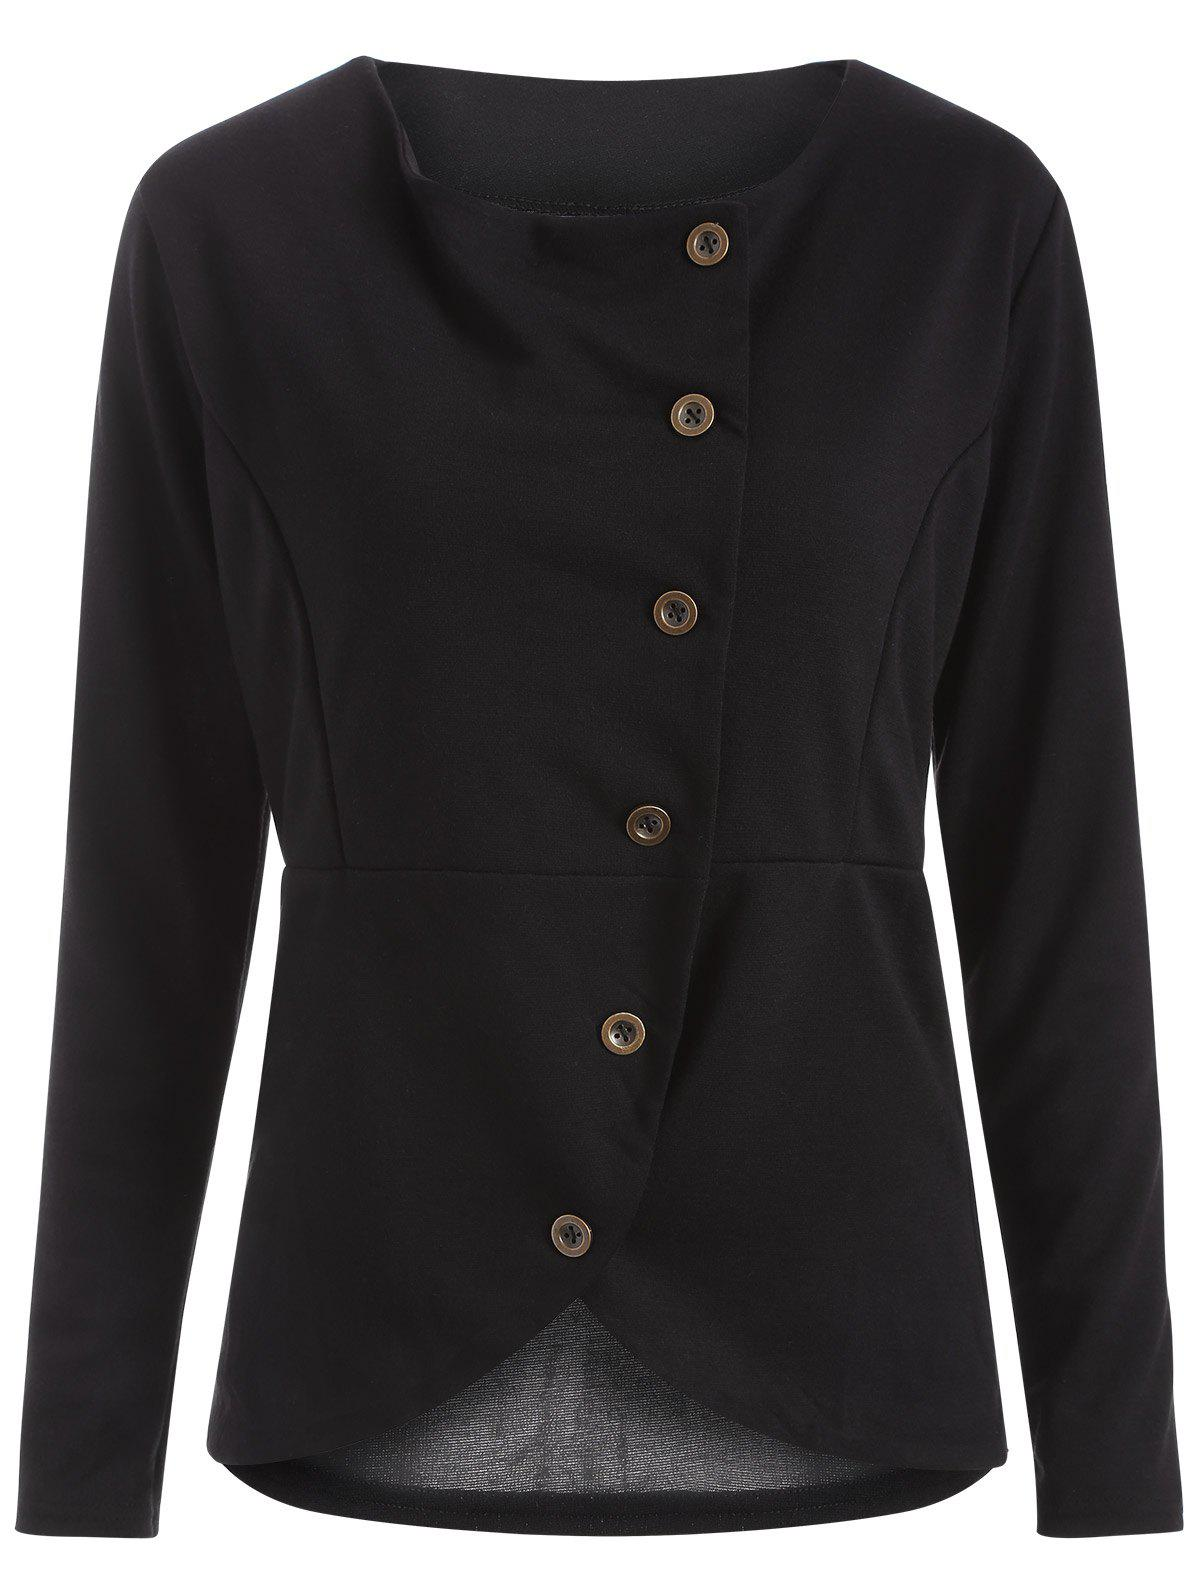 Asymmetric Buttoned T-Shirt - BLACK S